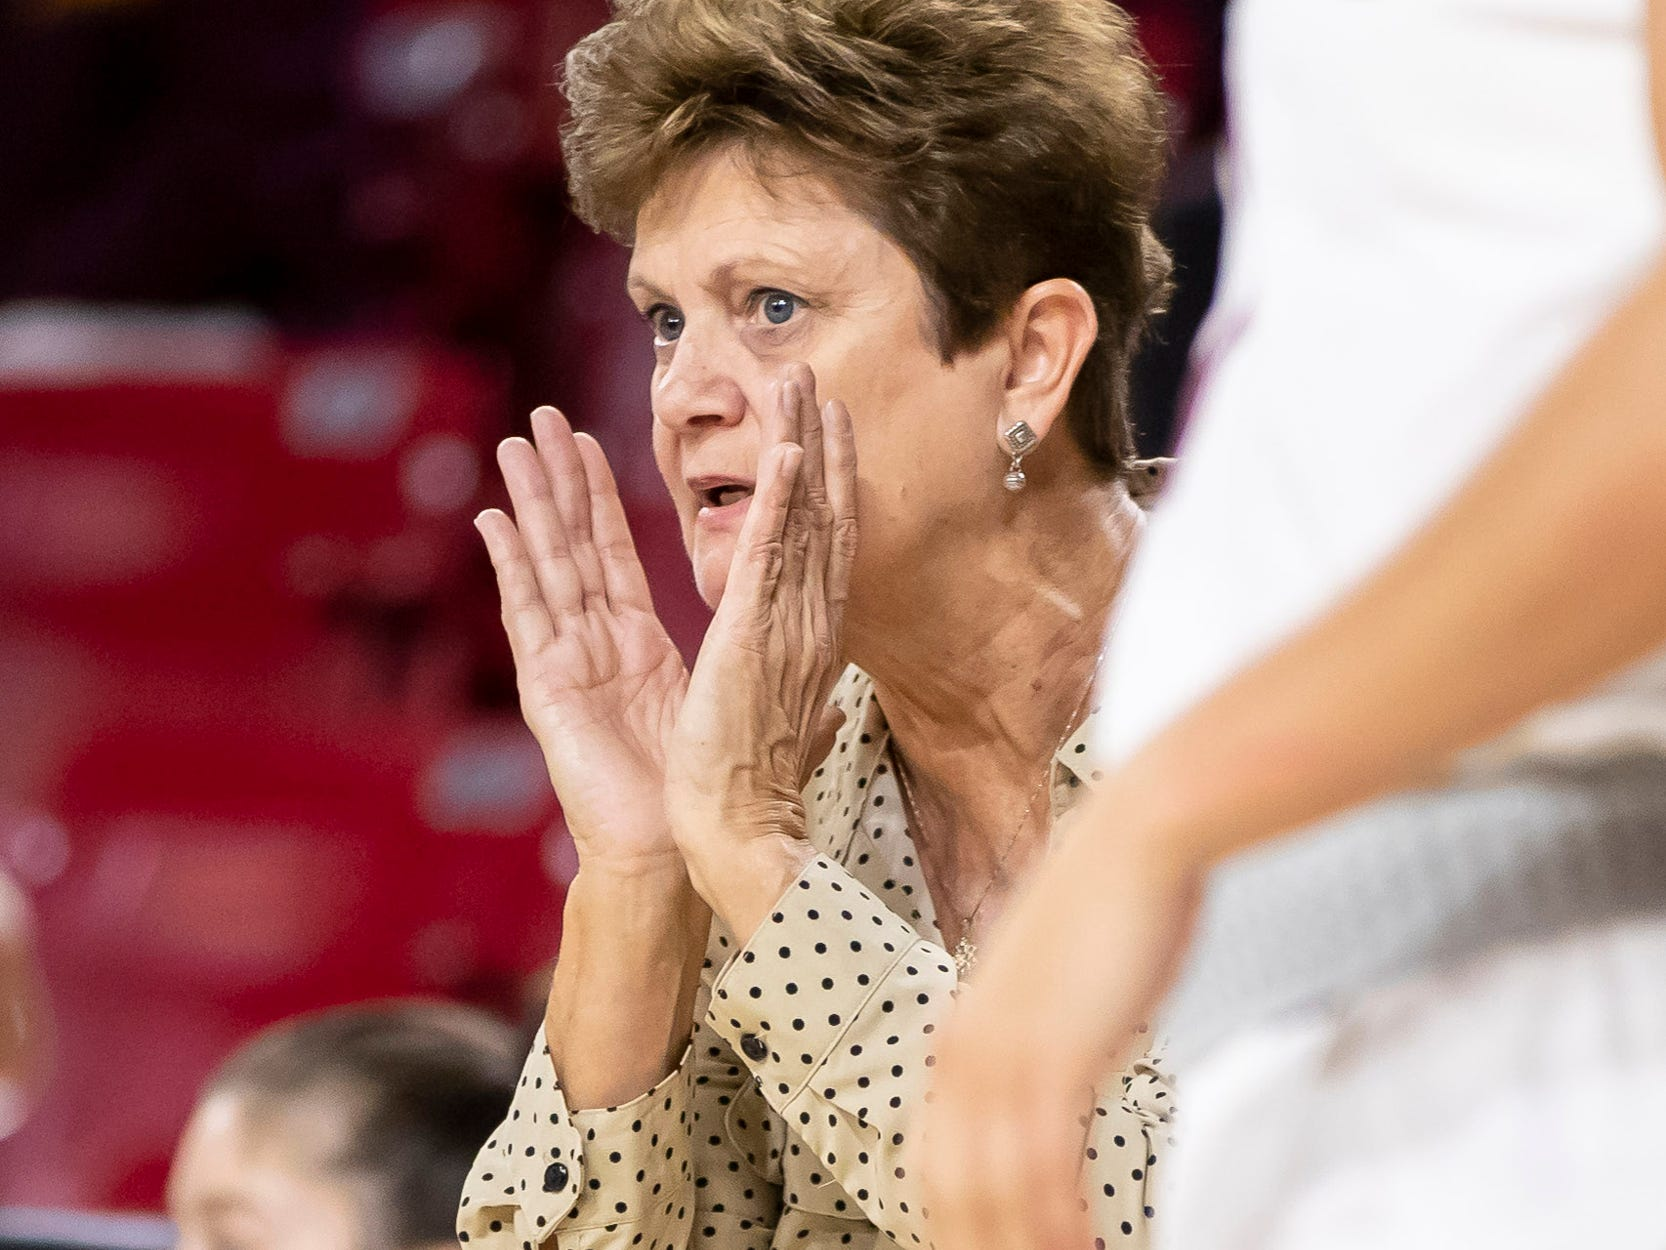 Head coach Matilda Mossman of the Tulsa Golden Hurricane yells during the game against the Arizona State Sun Devils at Wells Fargo Arena on Sunday, December 2, 2018 in Tempe, Arizona.